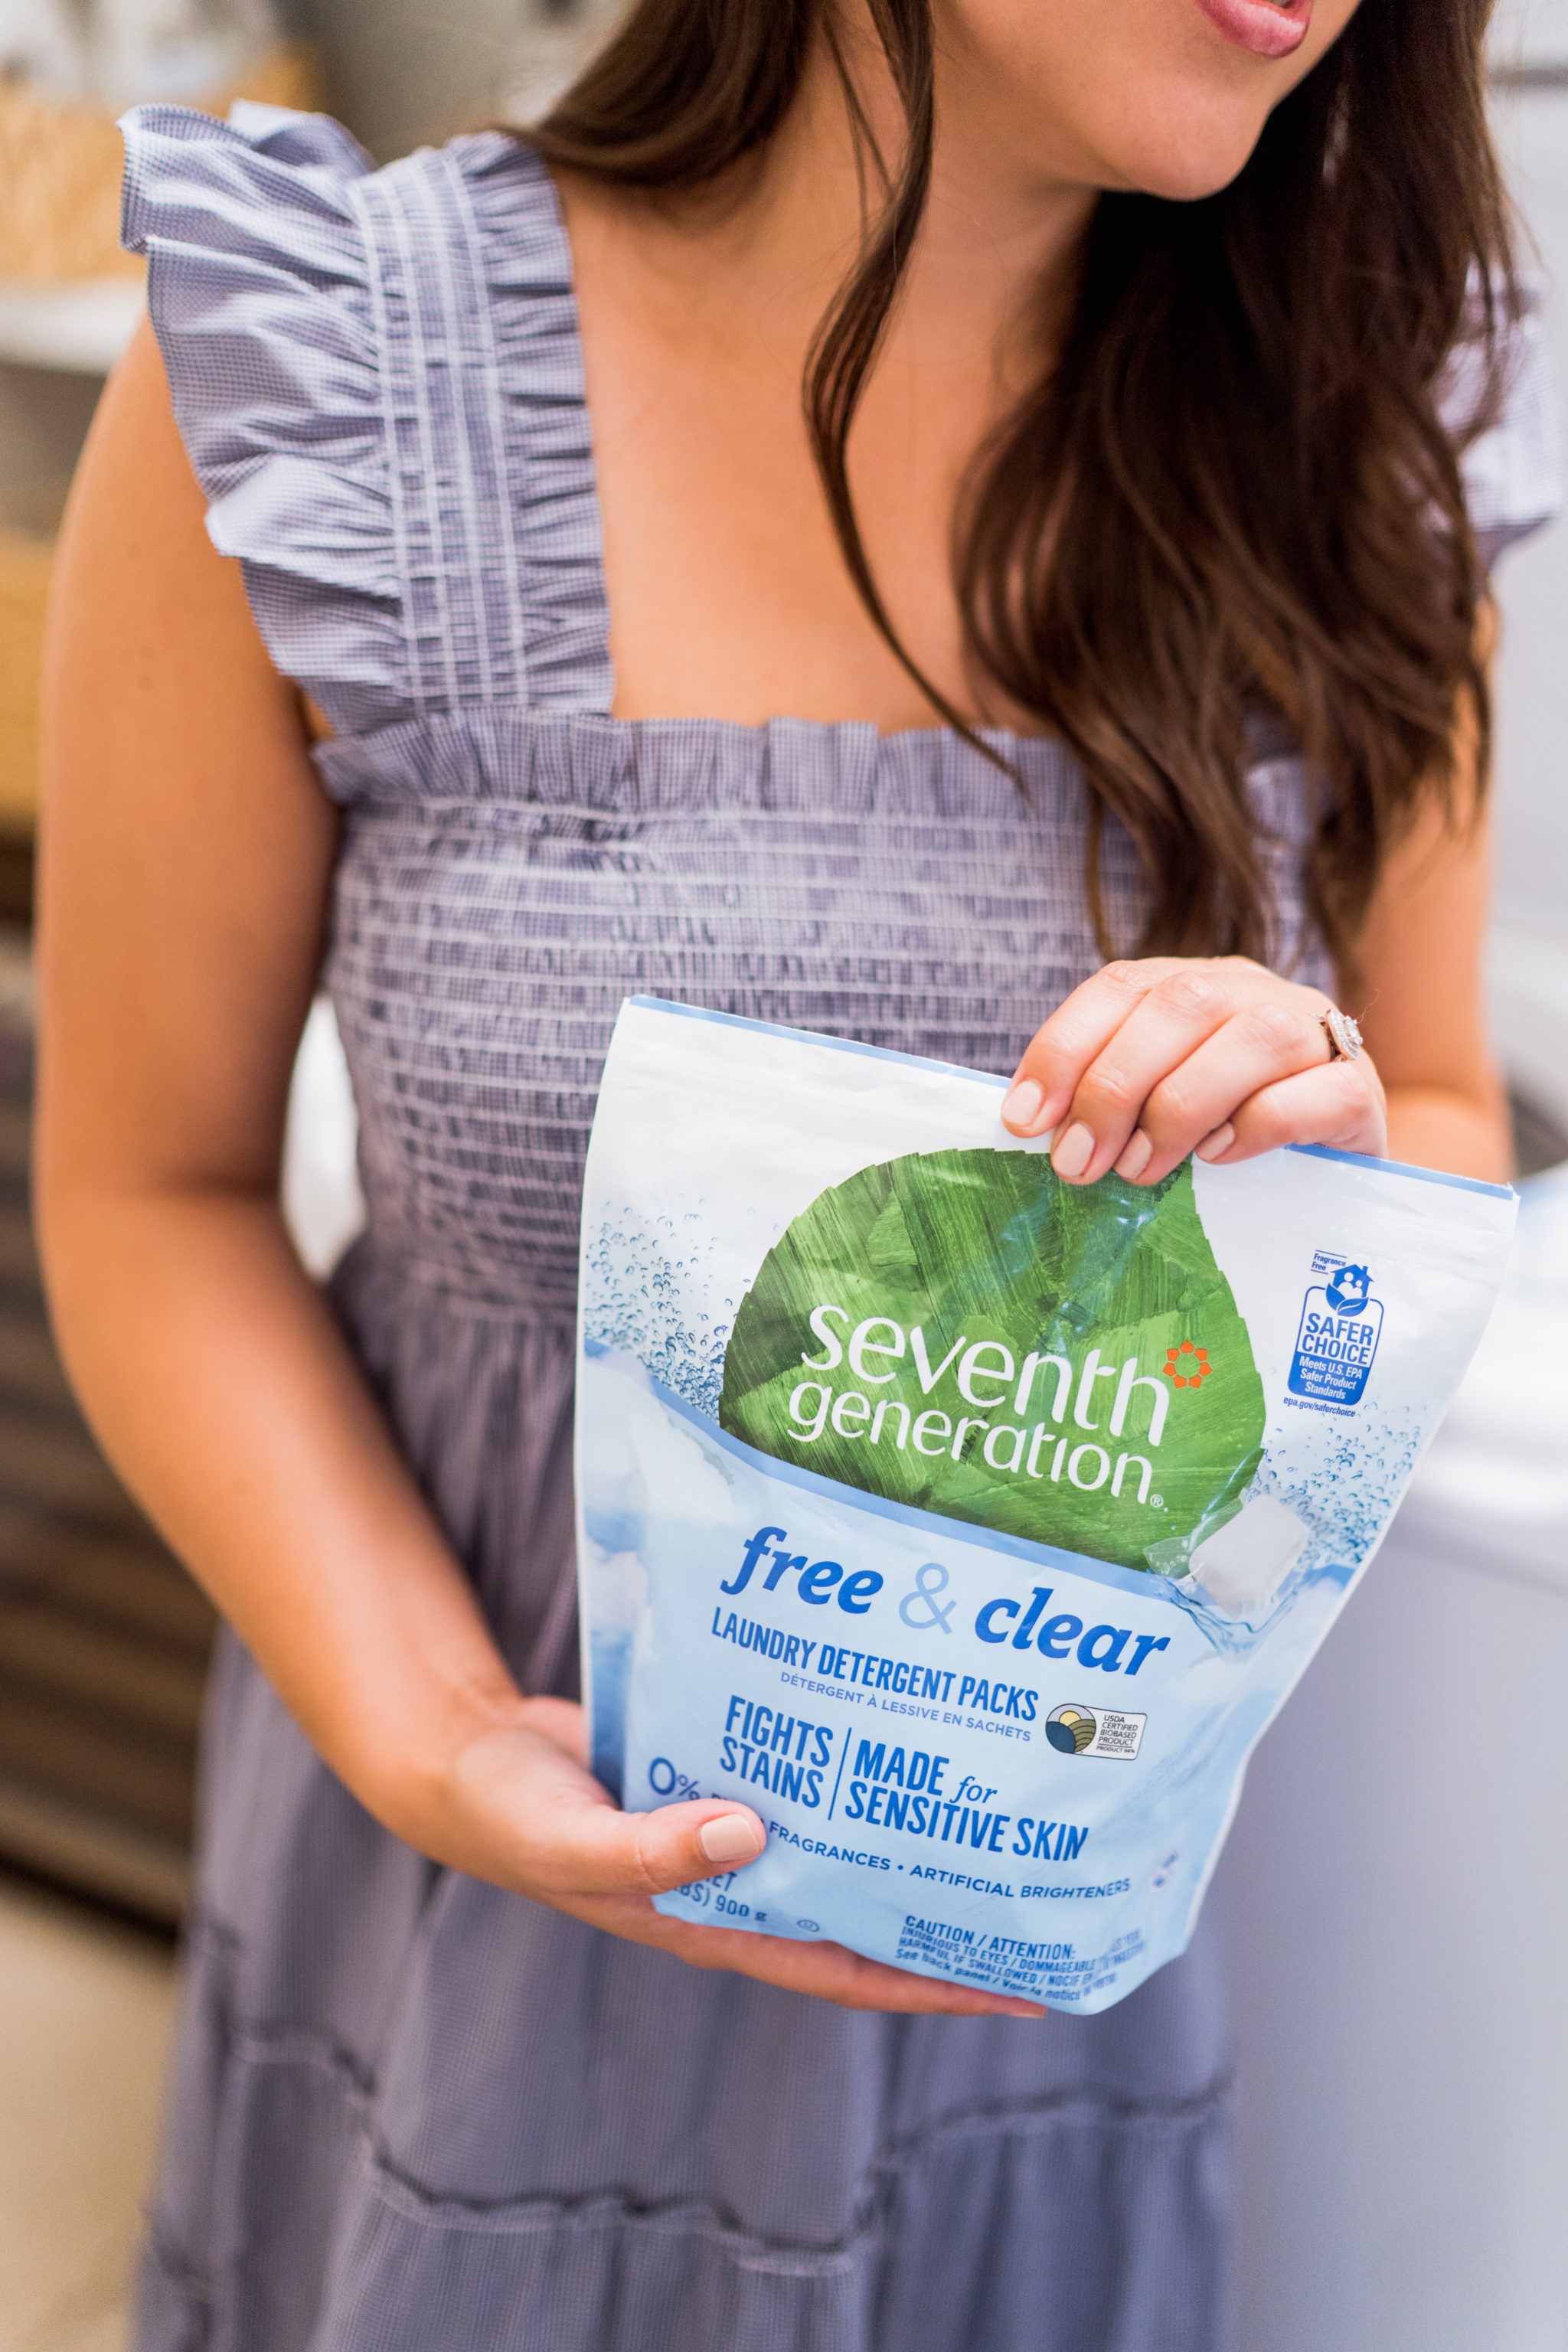 Seventh Generation free & clear natural laundry detergent review